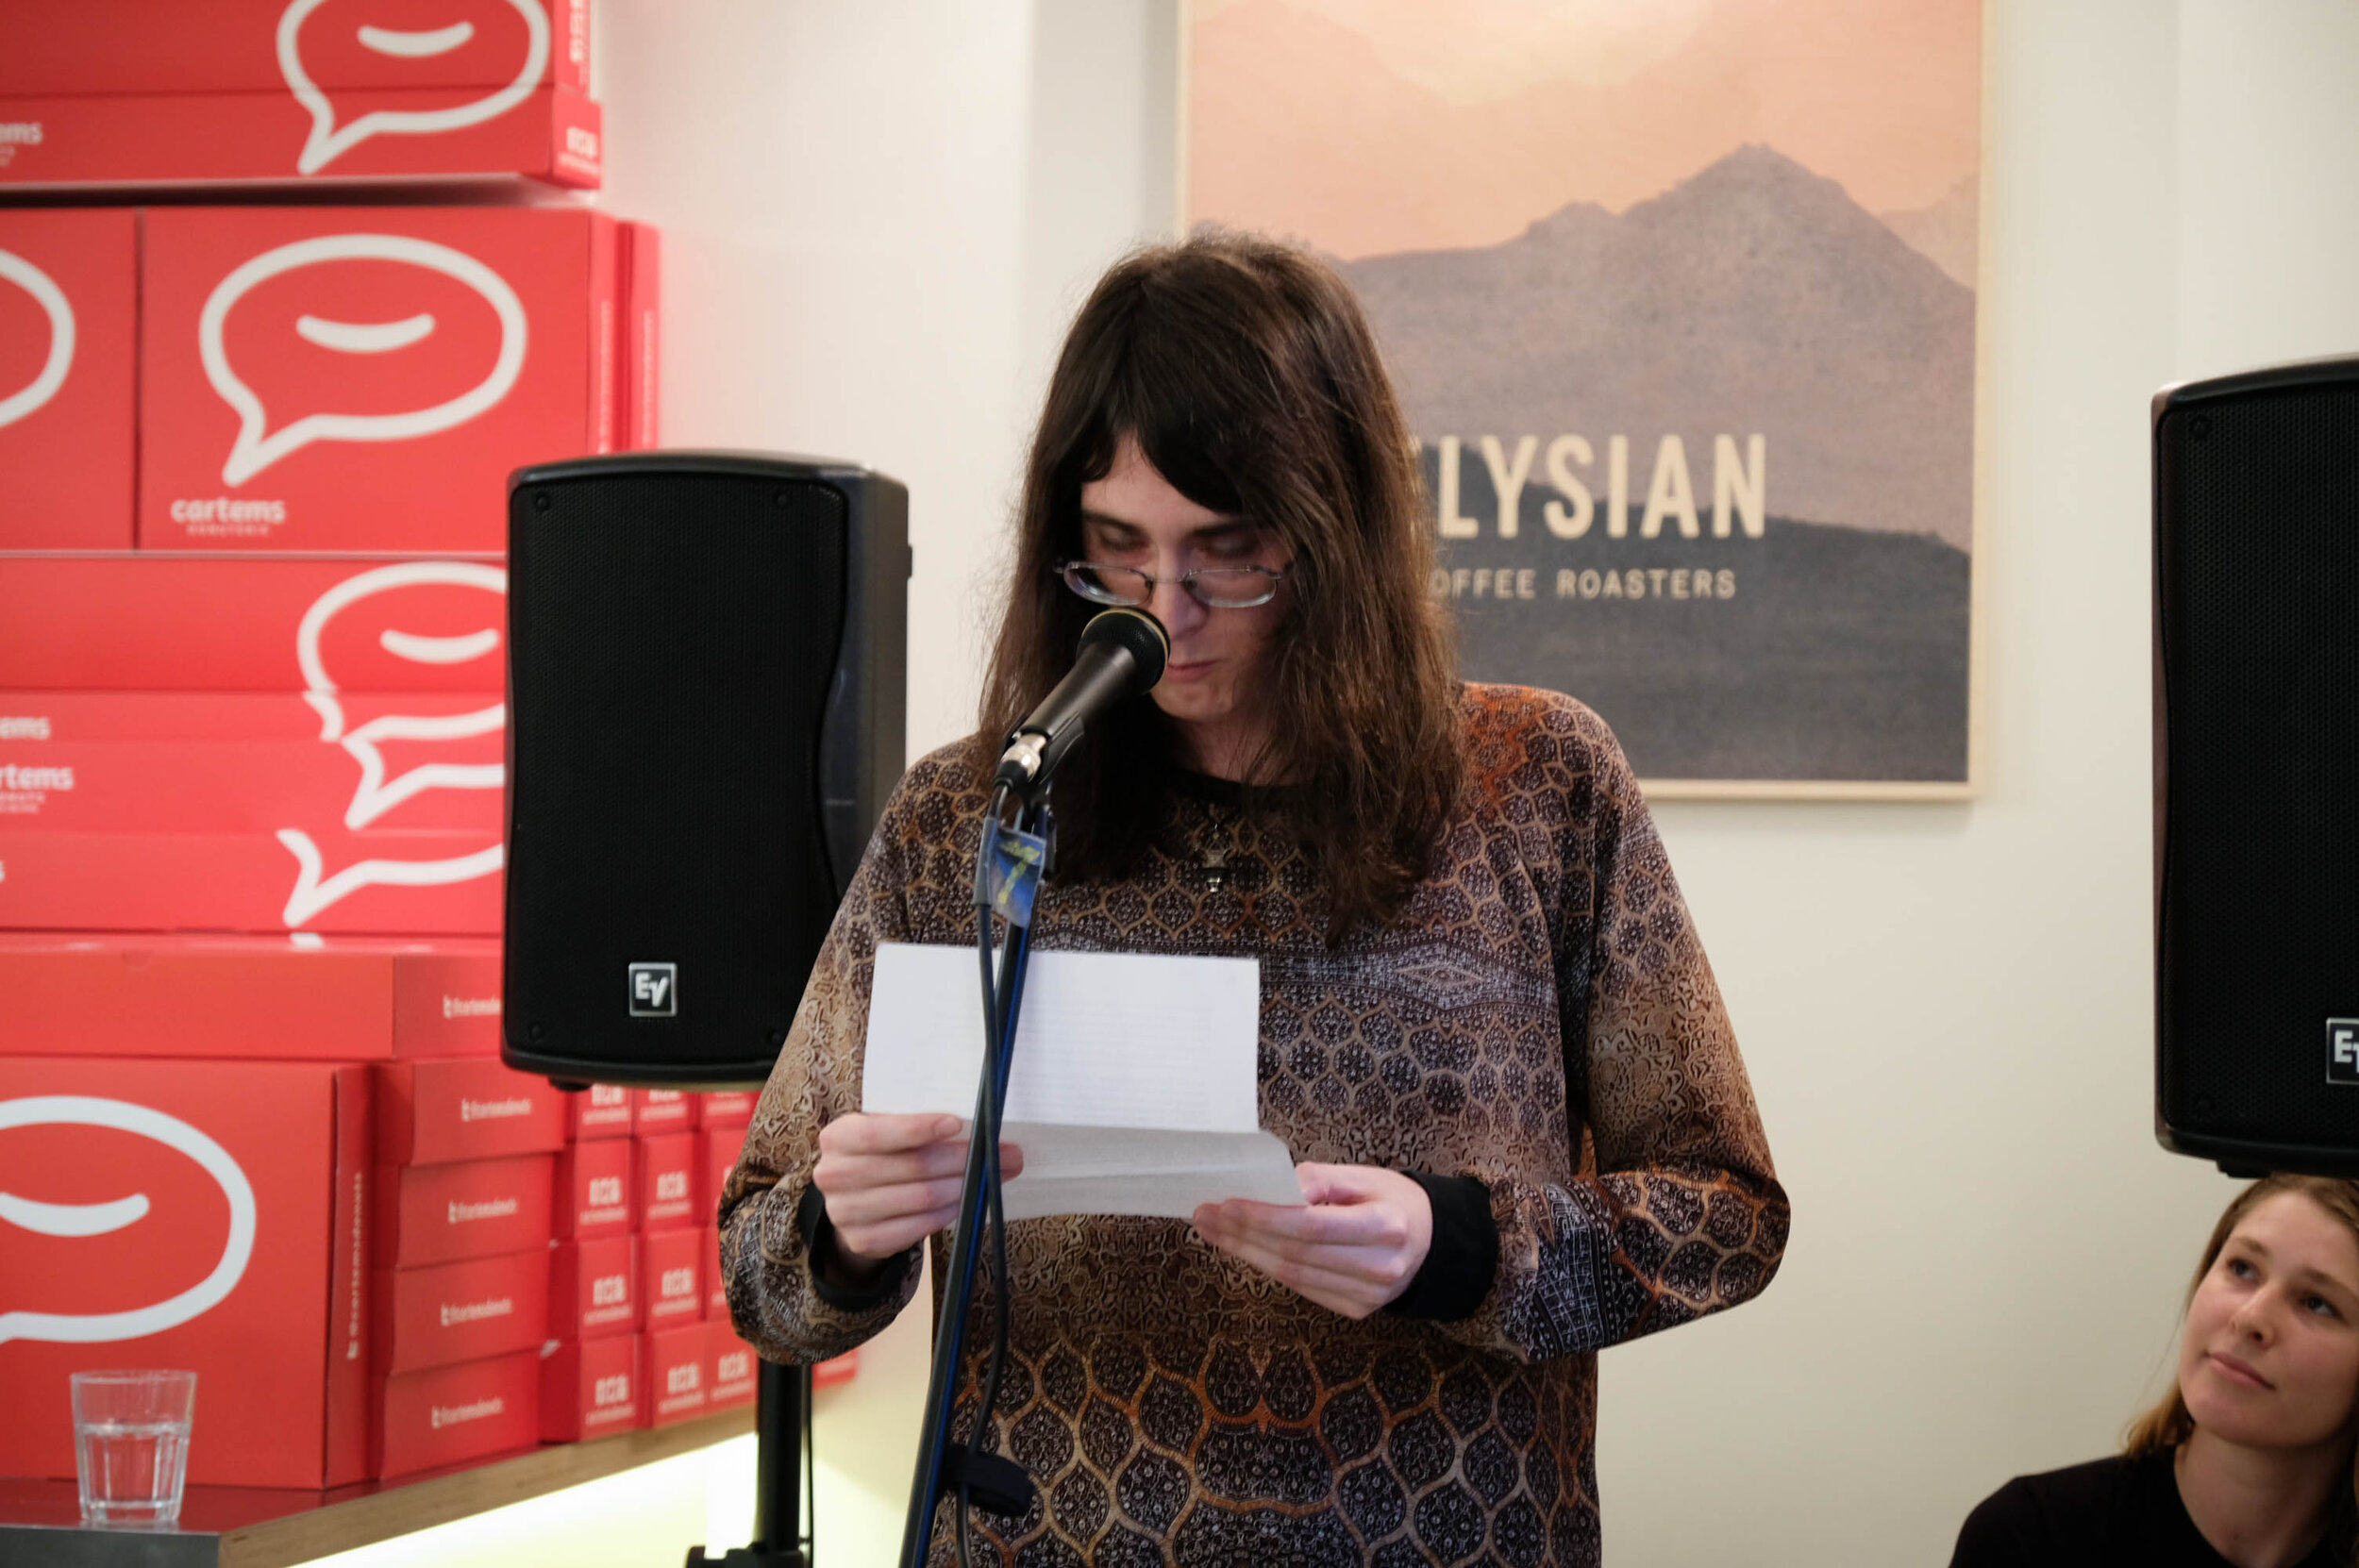 Storyteller, Monica on: her experience as a trans woman with a deep voice - a story of vulnerability and resilience